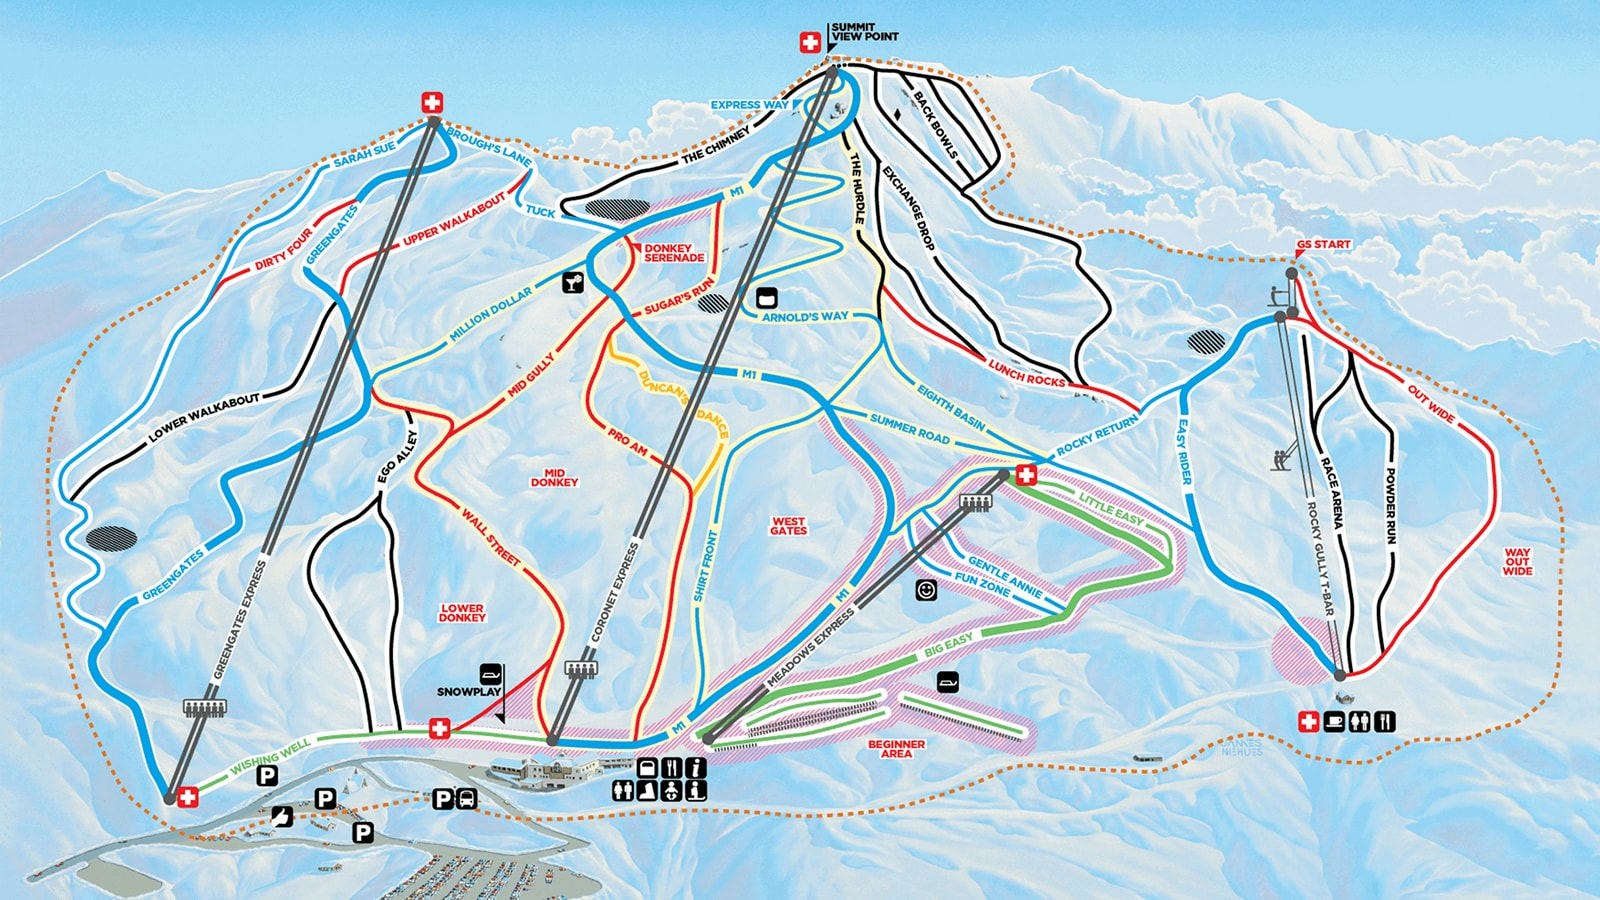 Coronet Peak Piste / Trail Map